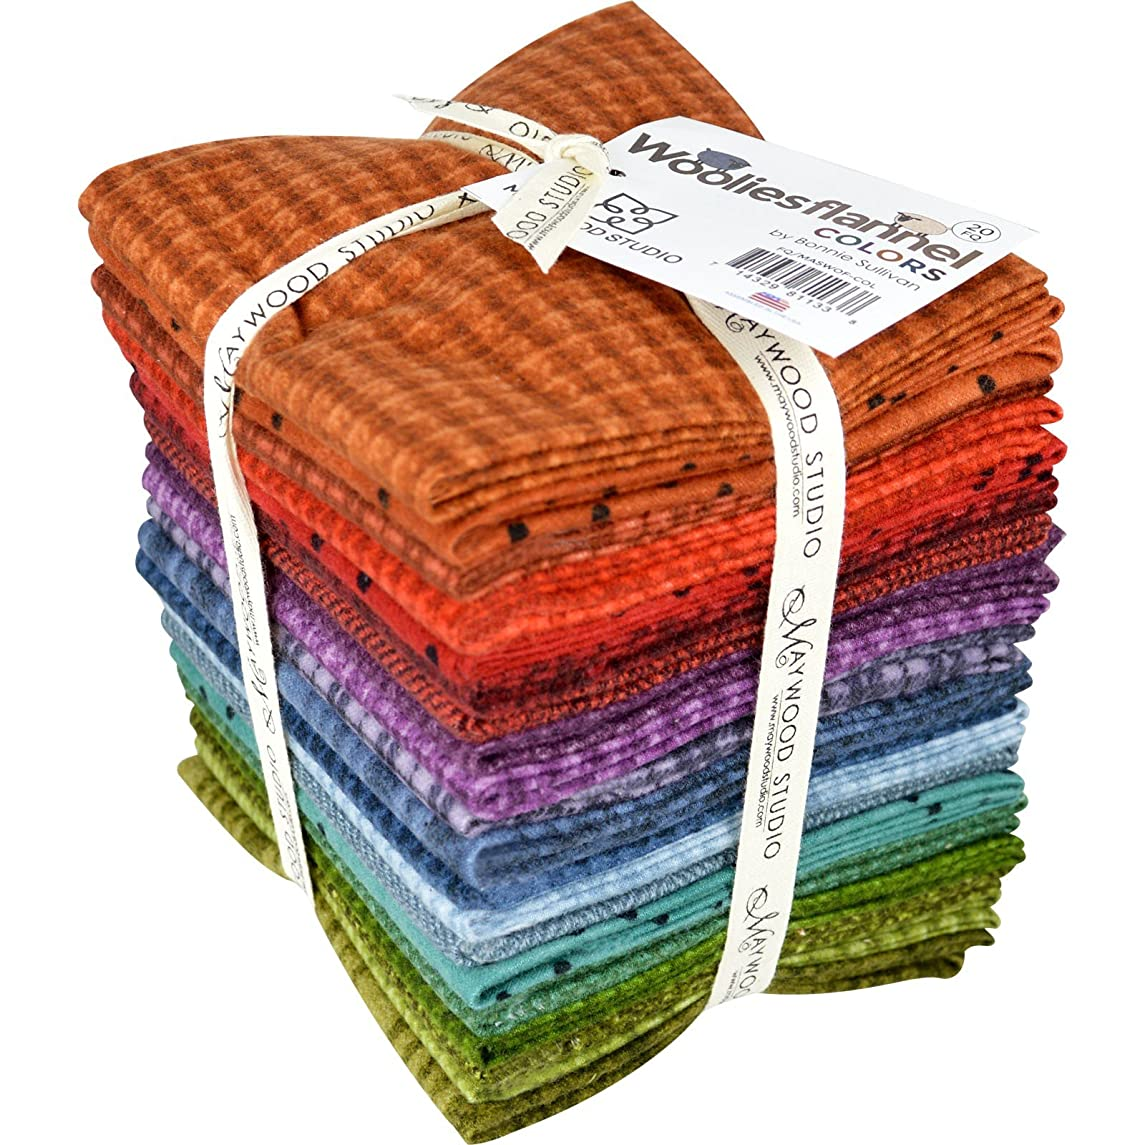 Woolies Flannel Colors Fat Quarter Bundle by Bonnie Sullivan from Maywood Studios - 20 Fat Quarters